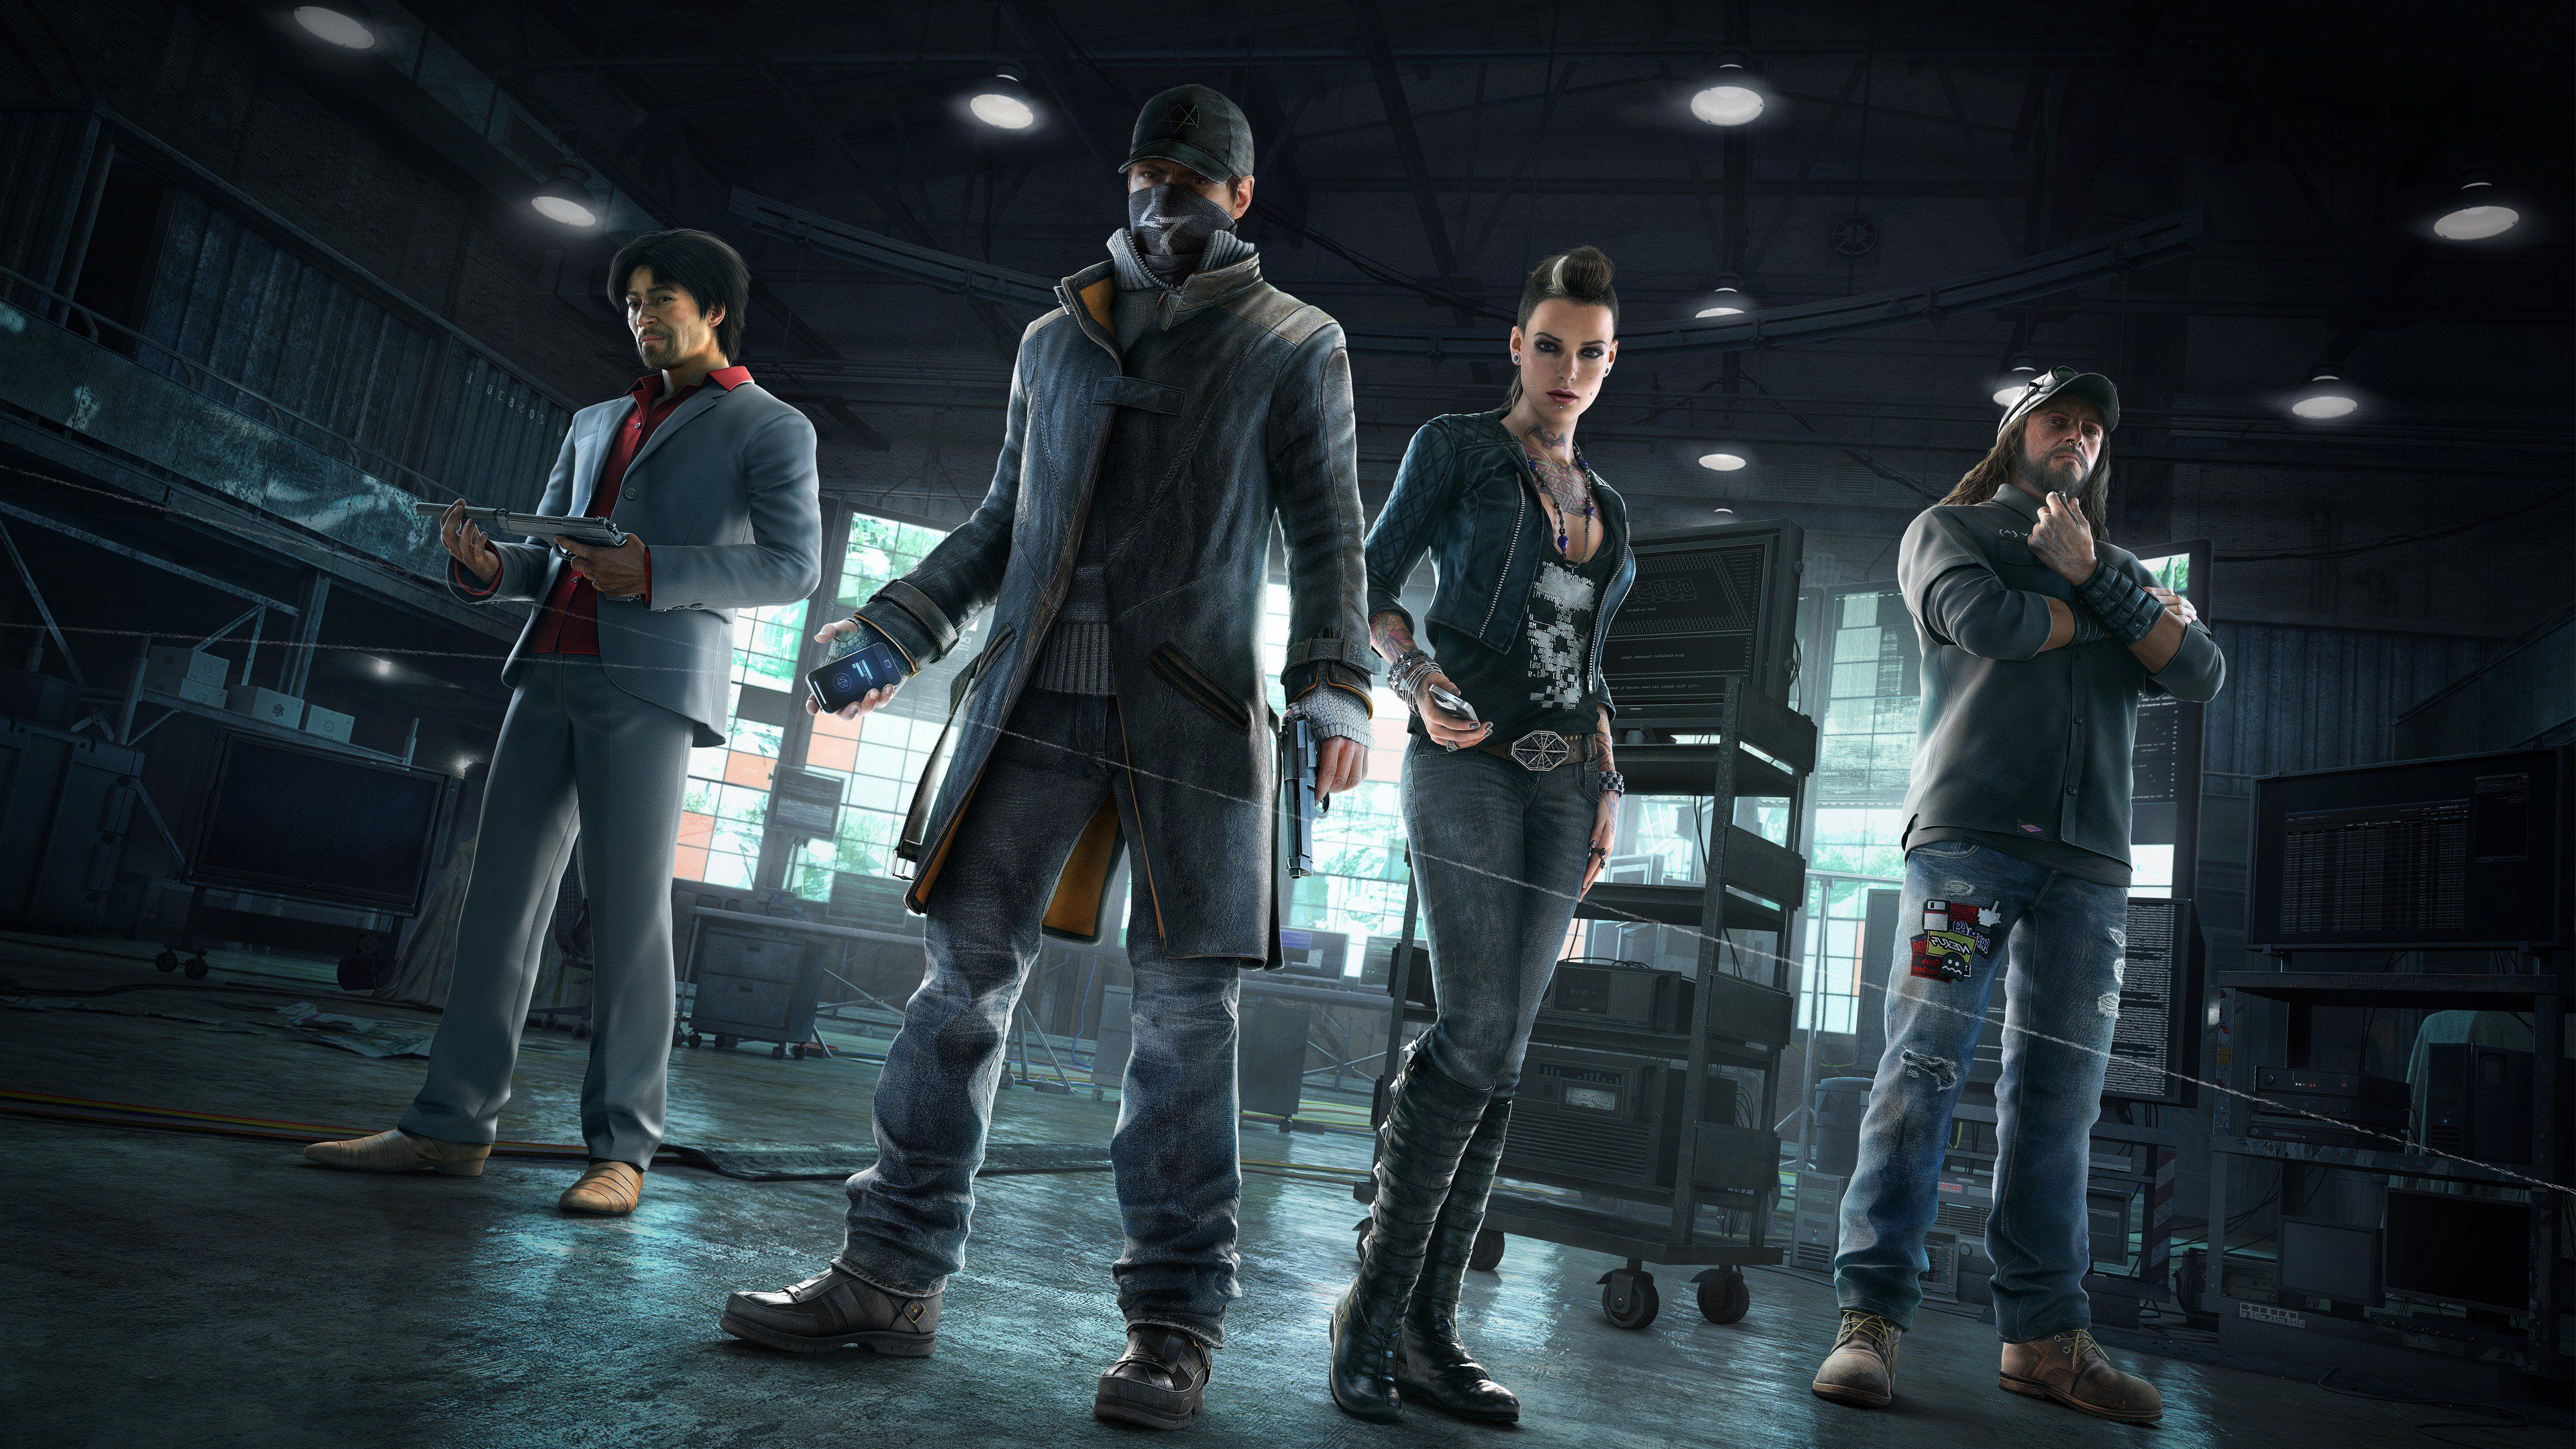 Watch dogs 2g 38402160 character pinterest characters watch dogs 2g 38402160 voltagebd Gallery